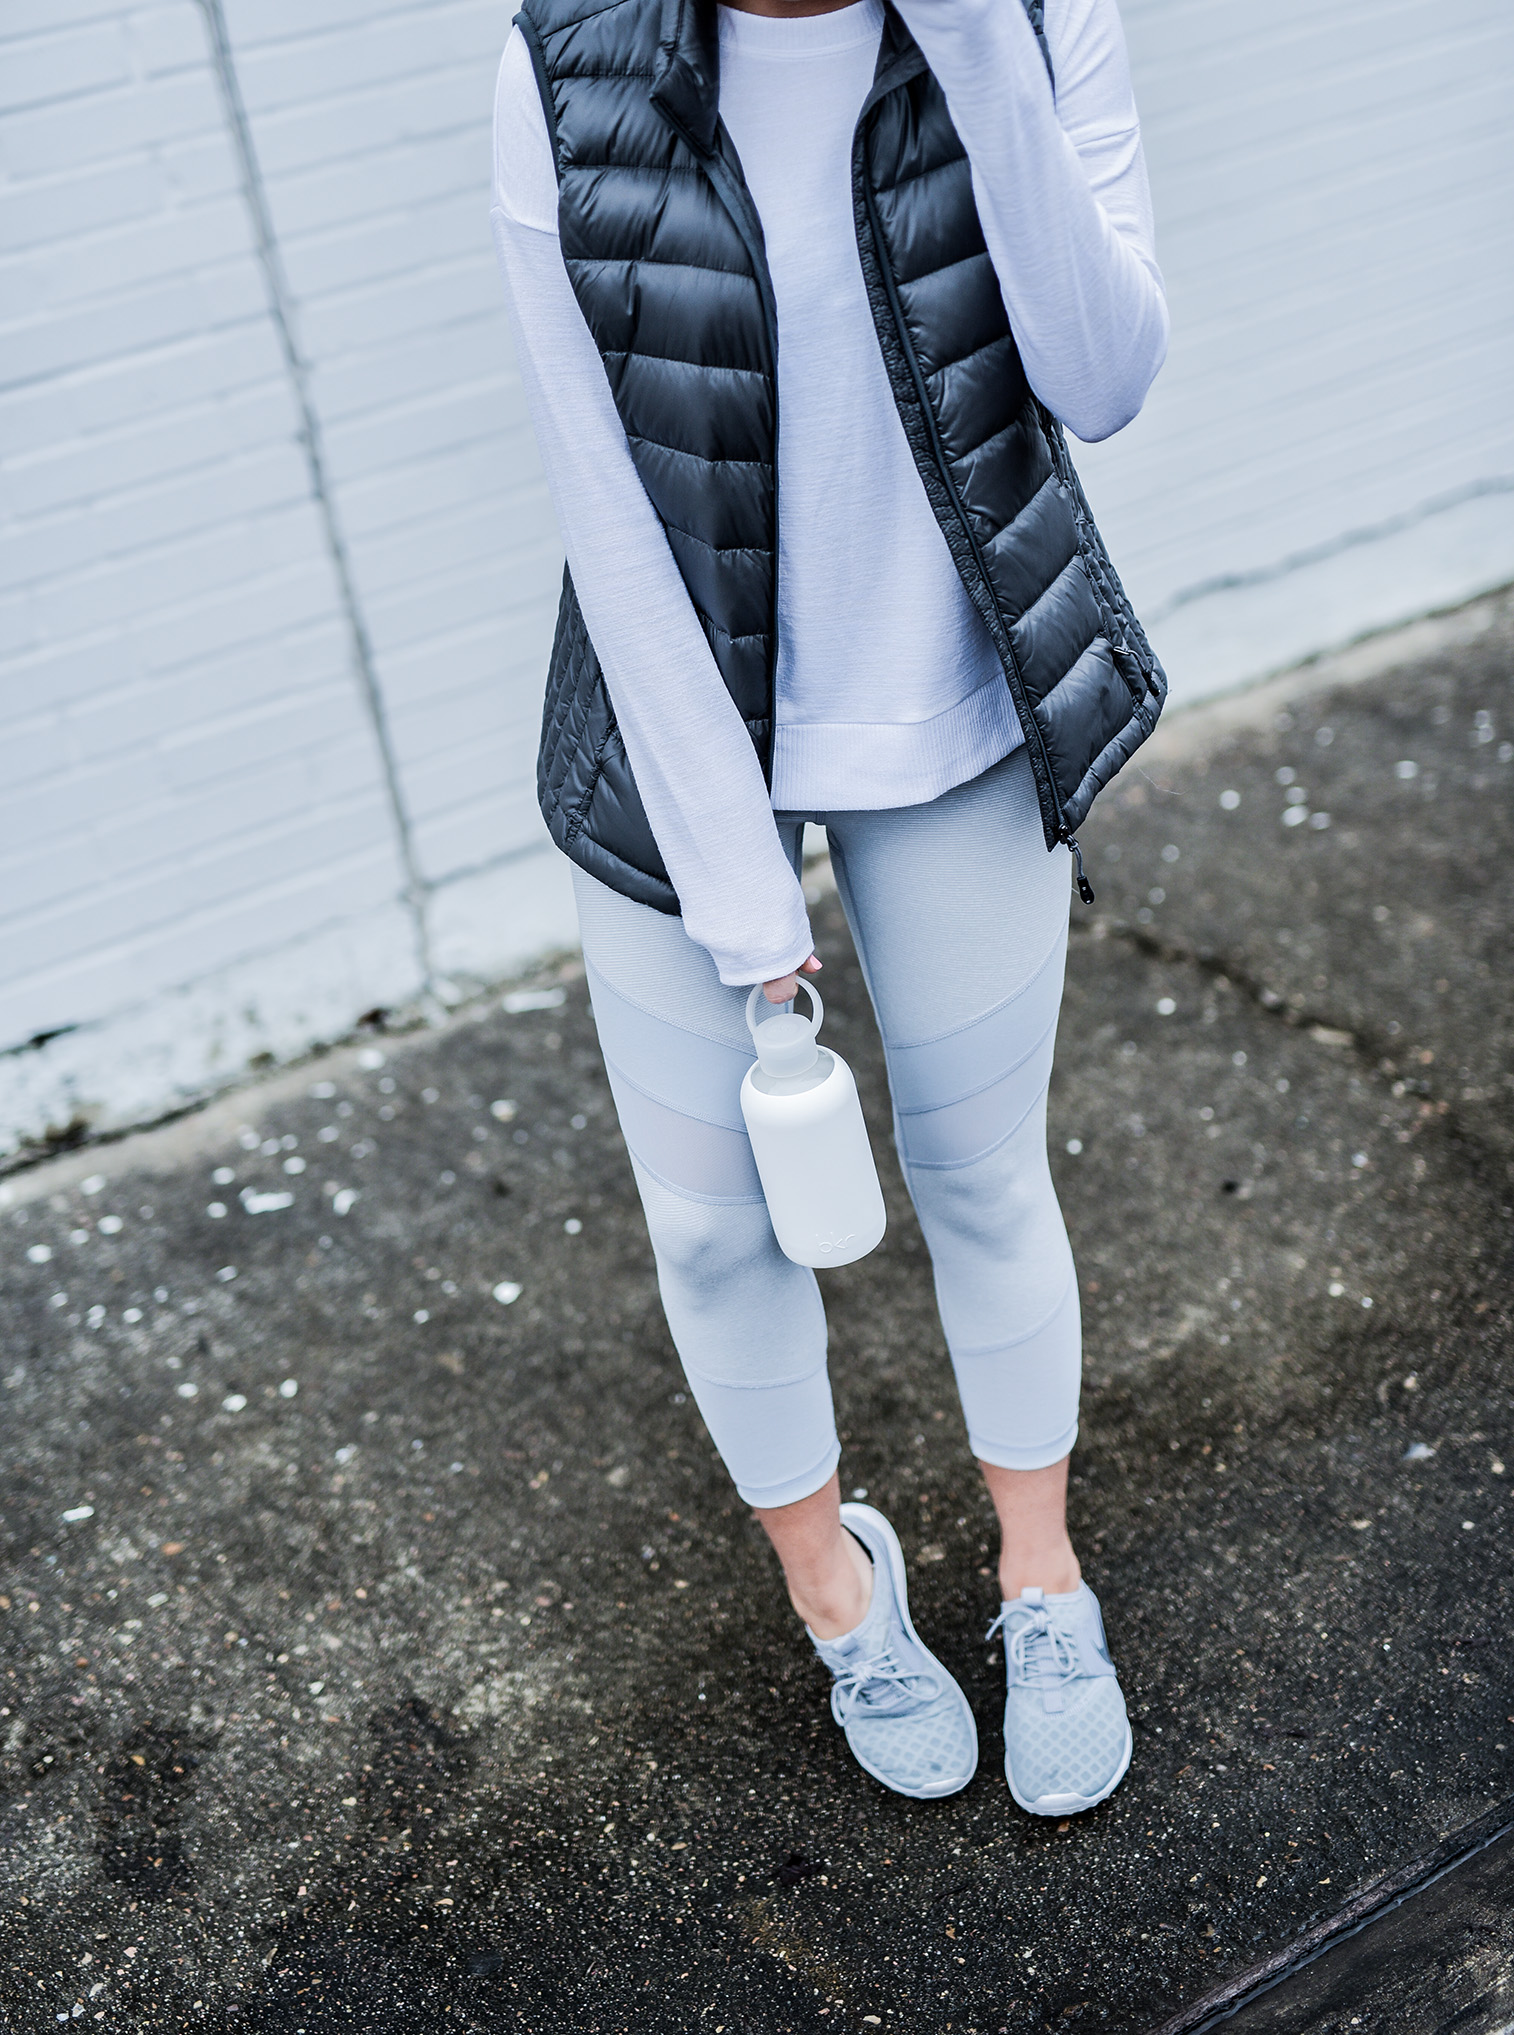 Houston fashion and lifestyle blogger Tiffany Jais of Flaunt and Center doing an instagram roundup featuring nordstrom leggings in grey, and a grey puffer vest. Click here to read more! | style, what's trending in women's fashion